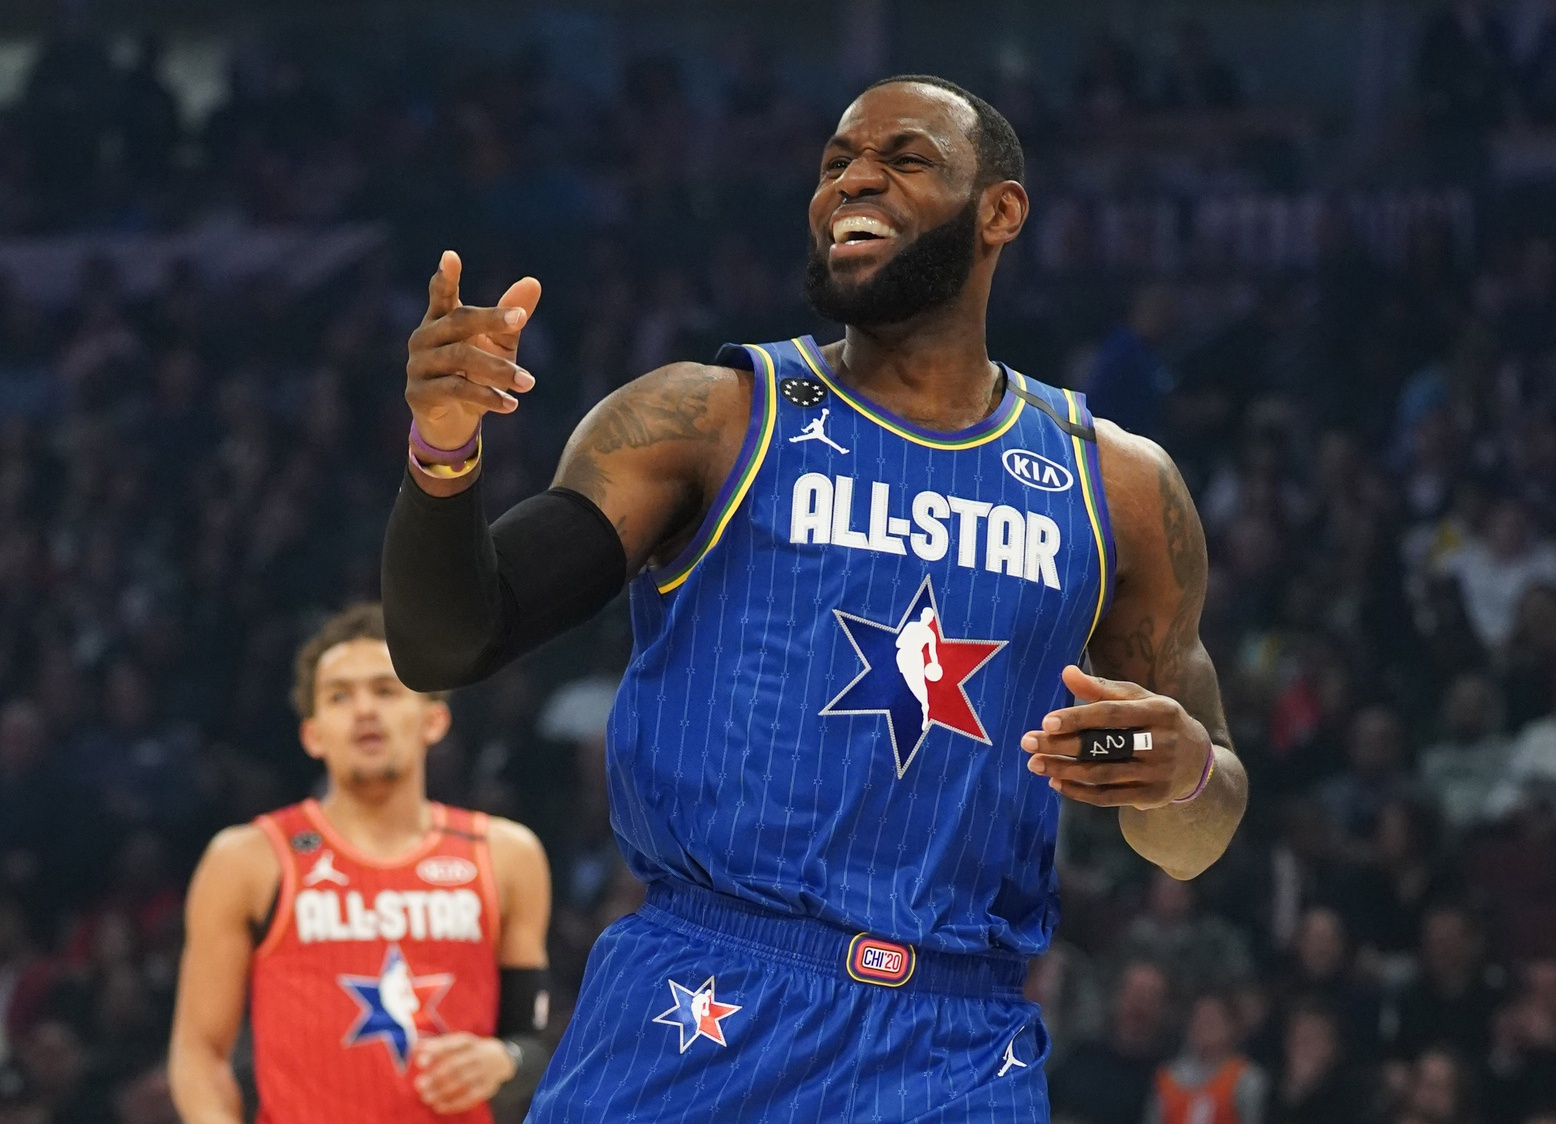 NBA All-Star Game Pays Tribute To Kobe Bryant As Team LeBron Wins